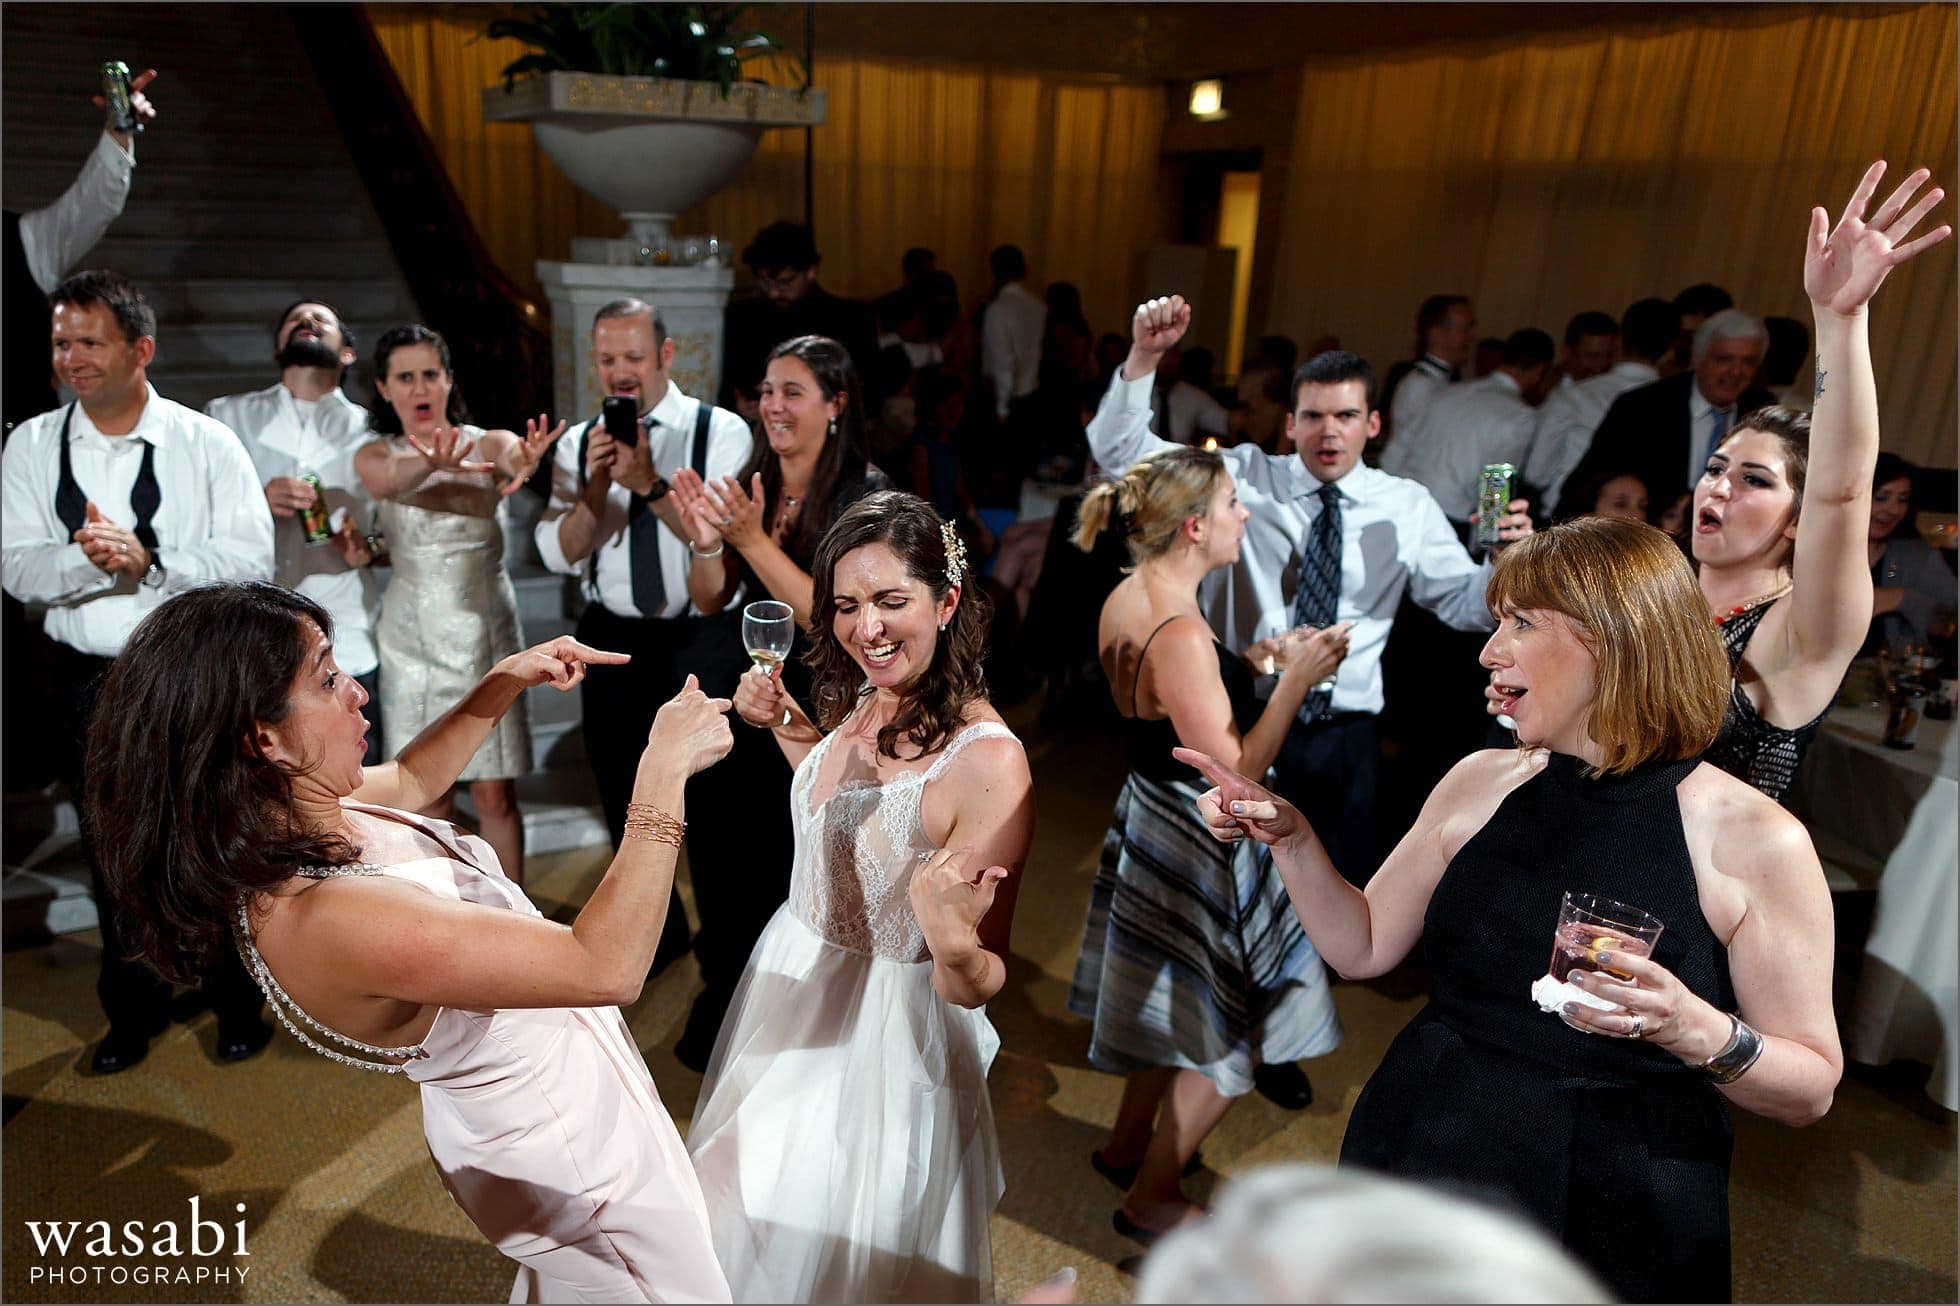 dance party during reception at The Rookery Building in Chicago